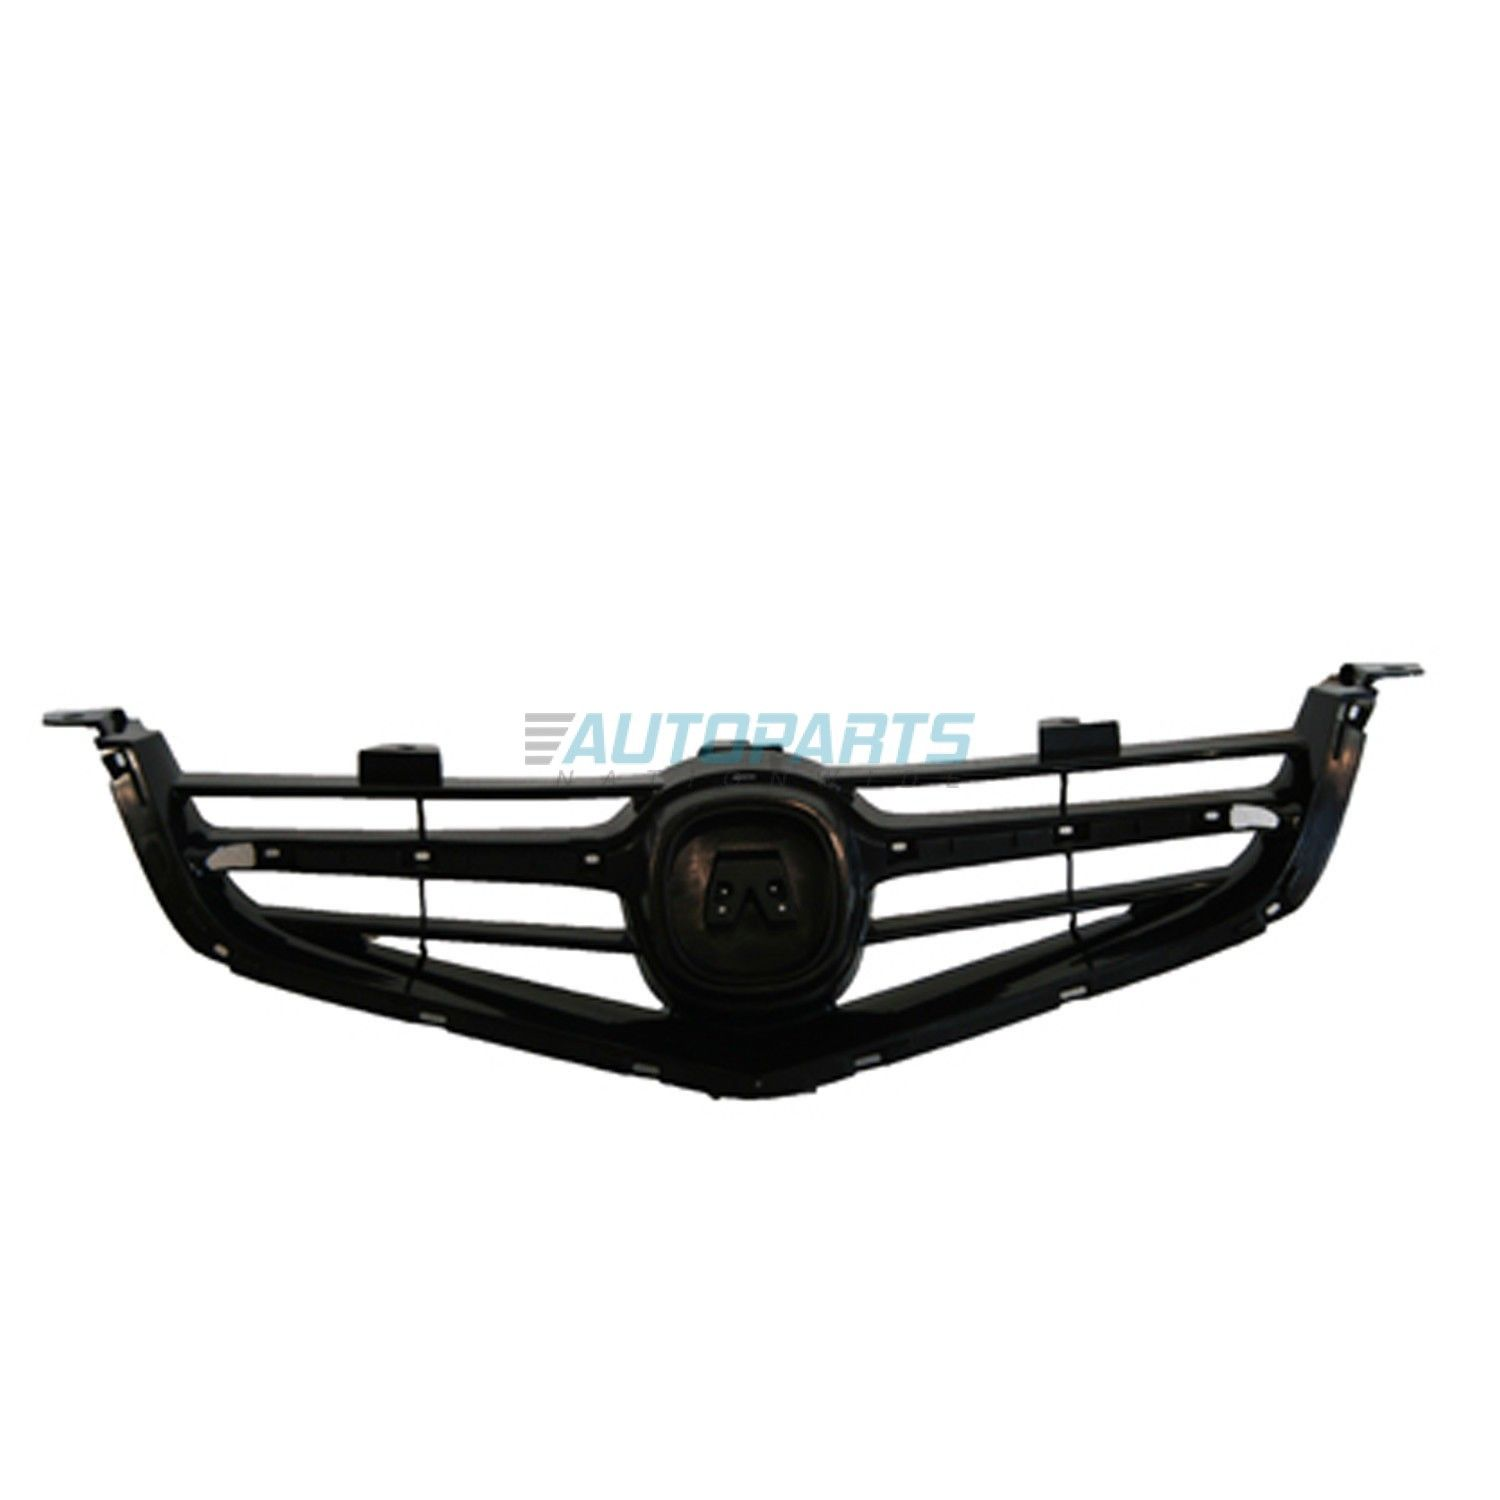 New Front Grille Matte-black Fits 2004-2005 Acura Tsx